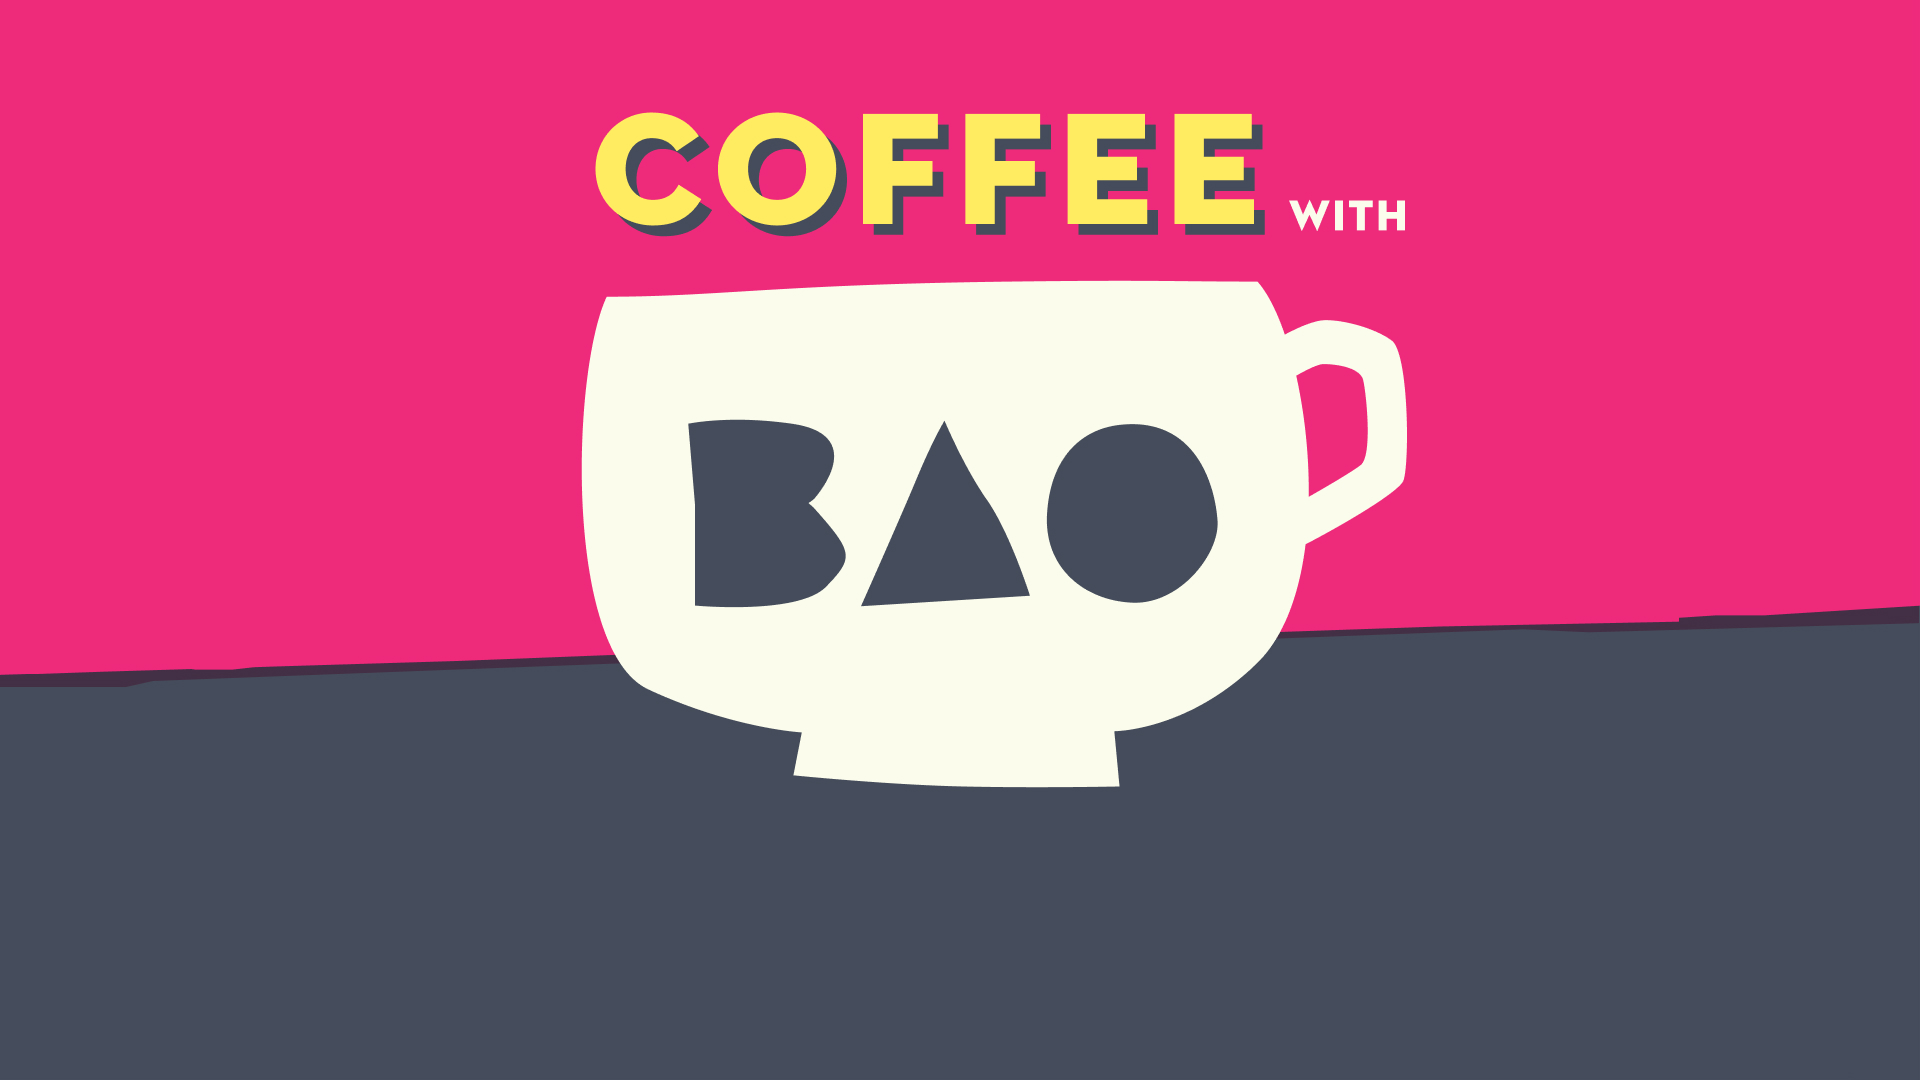 Introducing: Coffee with BAO